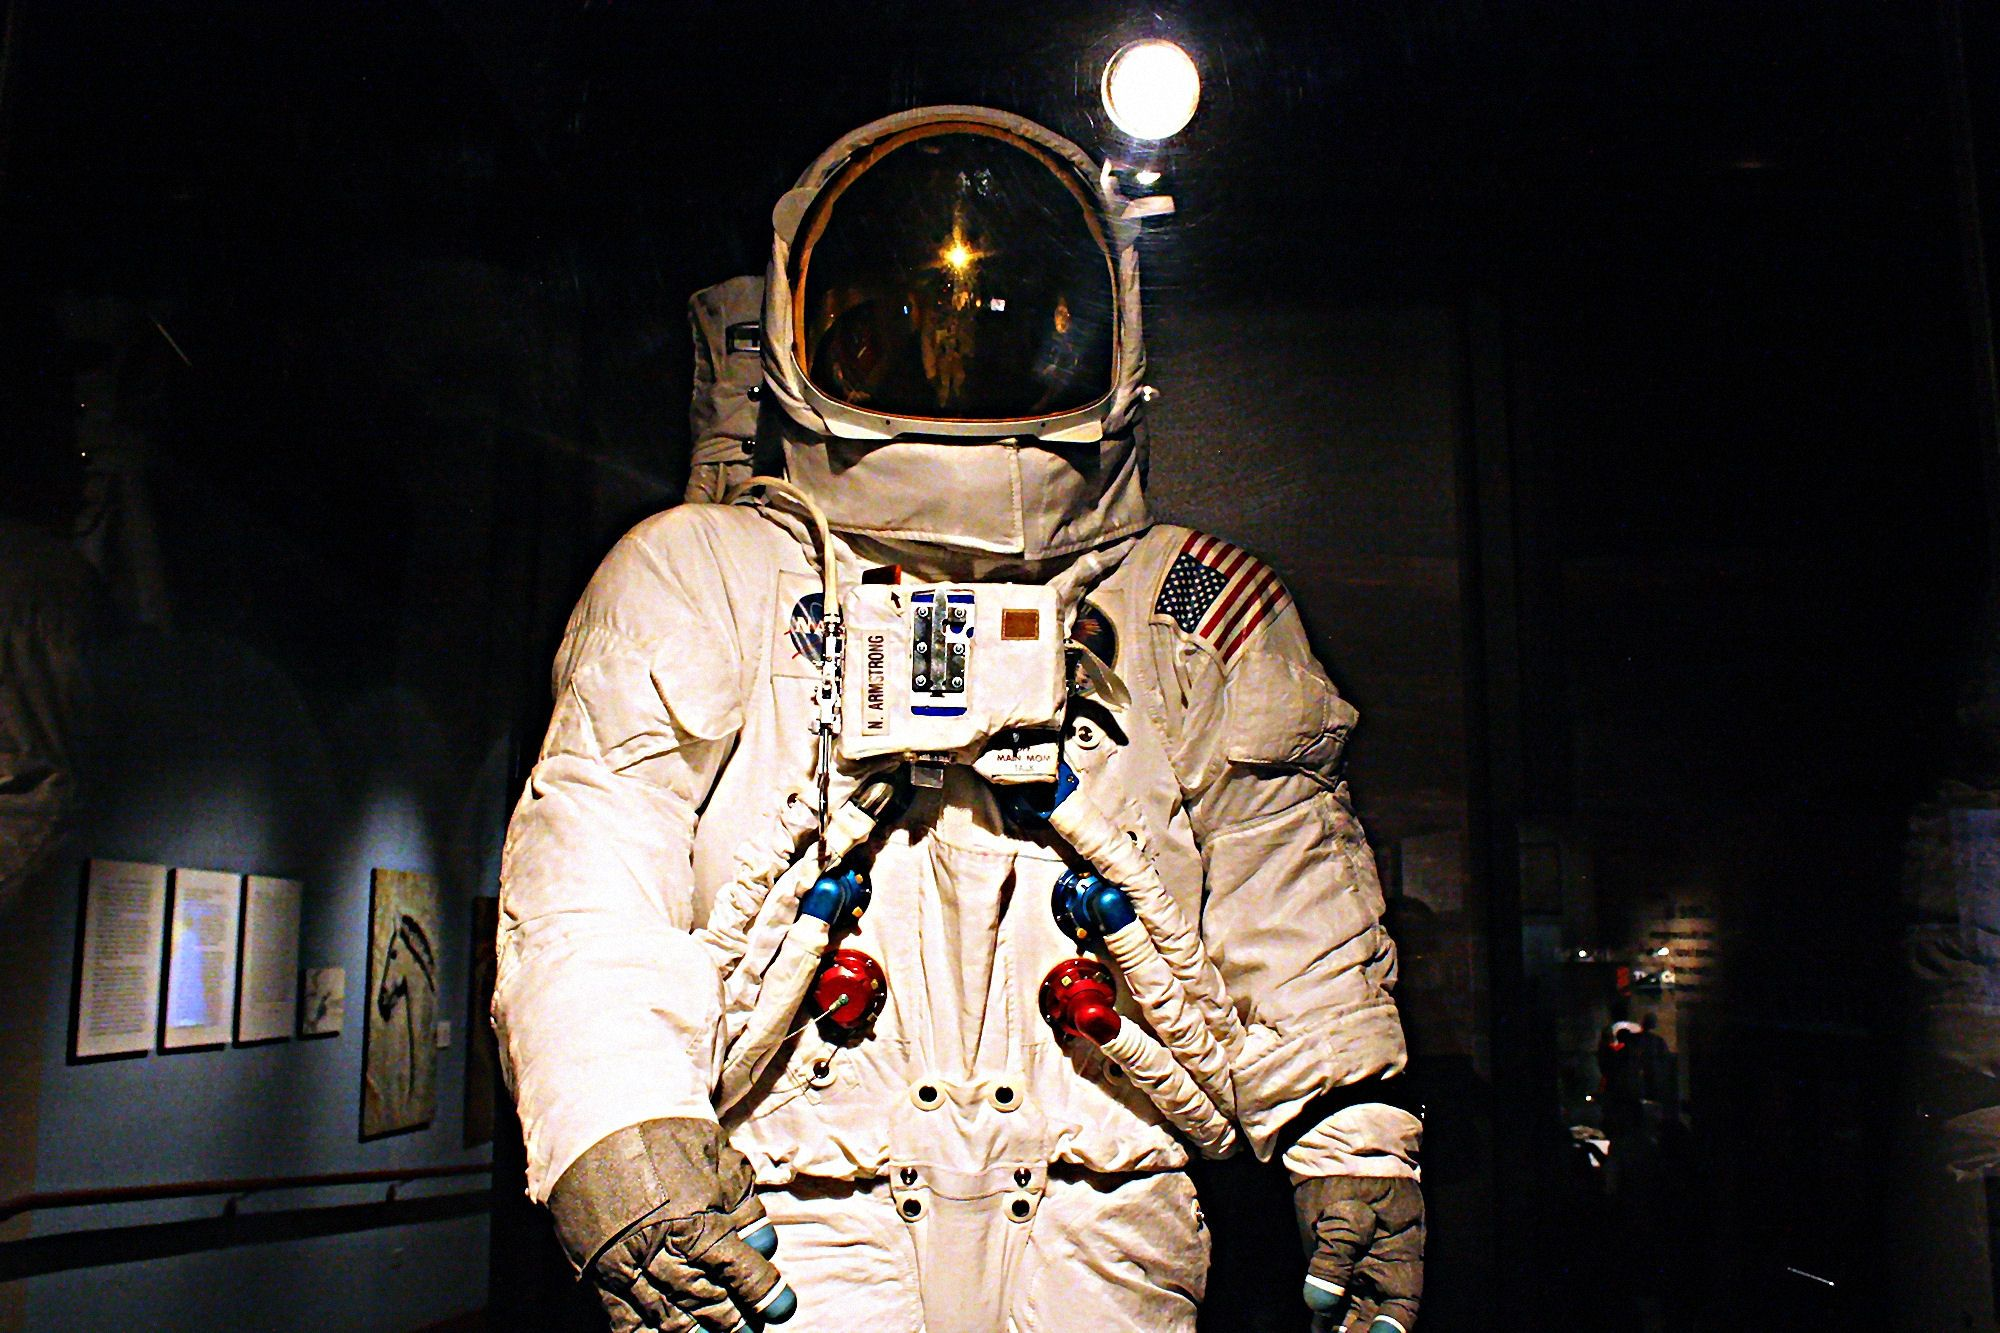 space suit The gemini space suit is a space suit worn by american astronauts for launch, in-flight activities (including evas) and landingit was designed by nasa based on the x-15 high-altitude pressure suit.